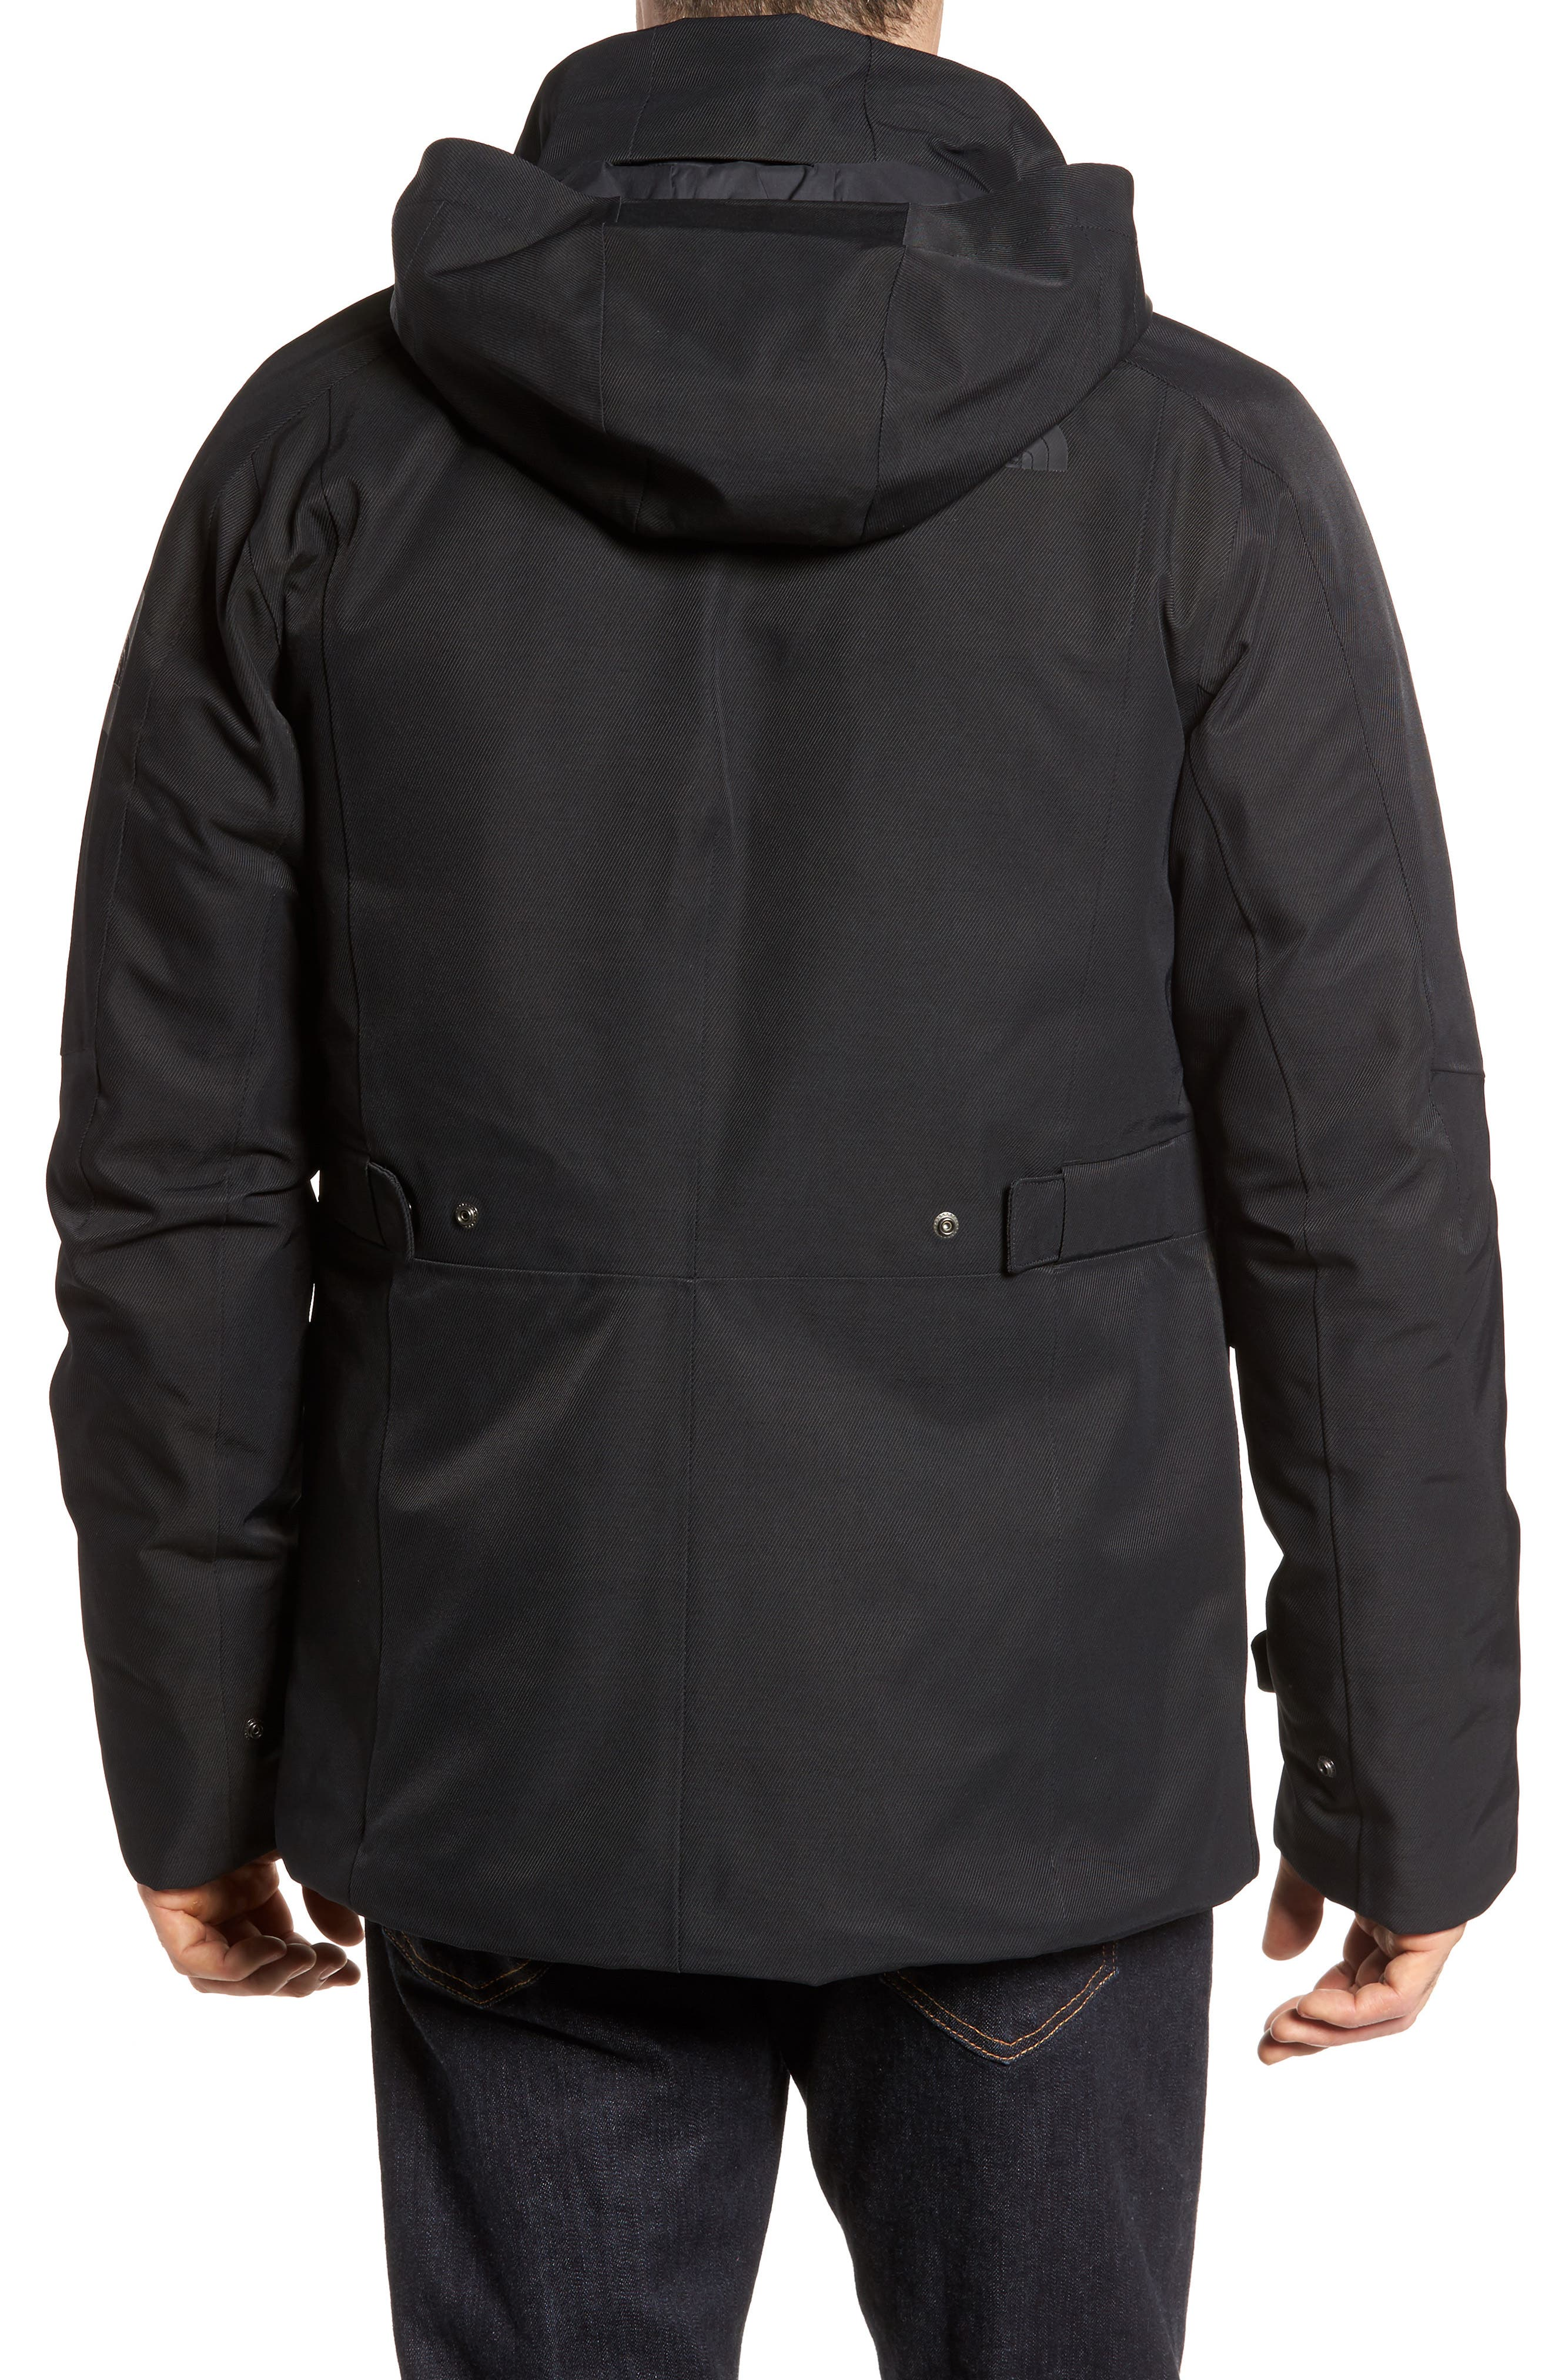 Cryos Waterproof Gore-Tex<sup>®</sup> PrimaLoft<sup>®</sup> Gold Insulated Jacket,                             Alternate thumbnail 2, color,                             Black